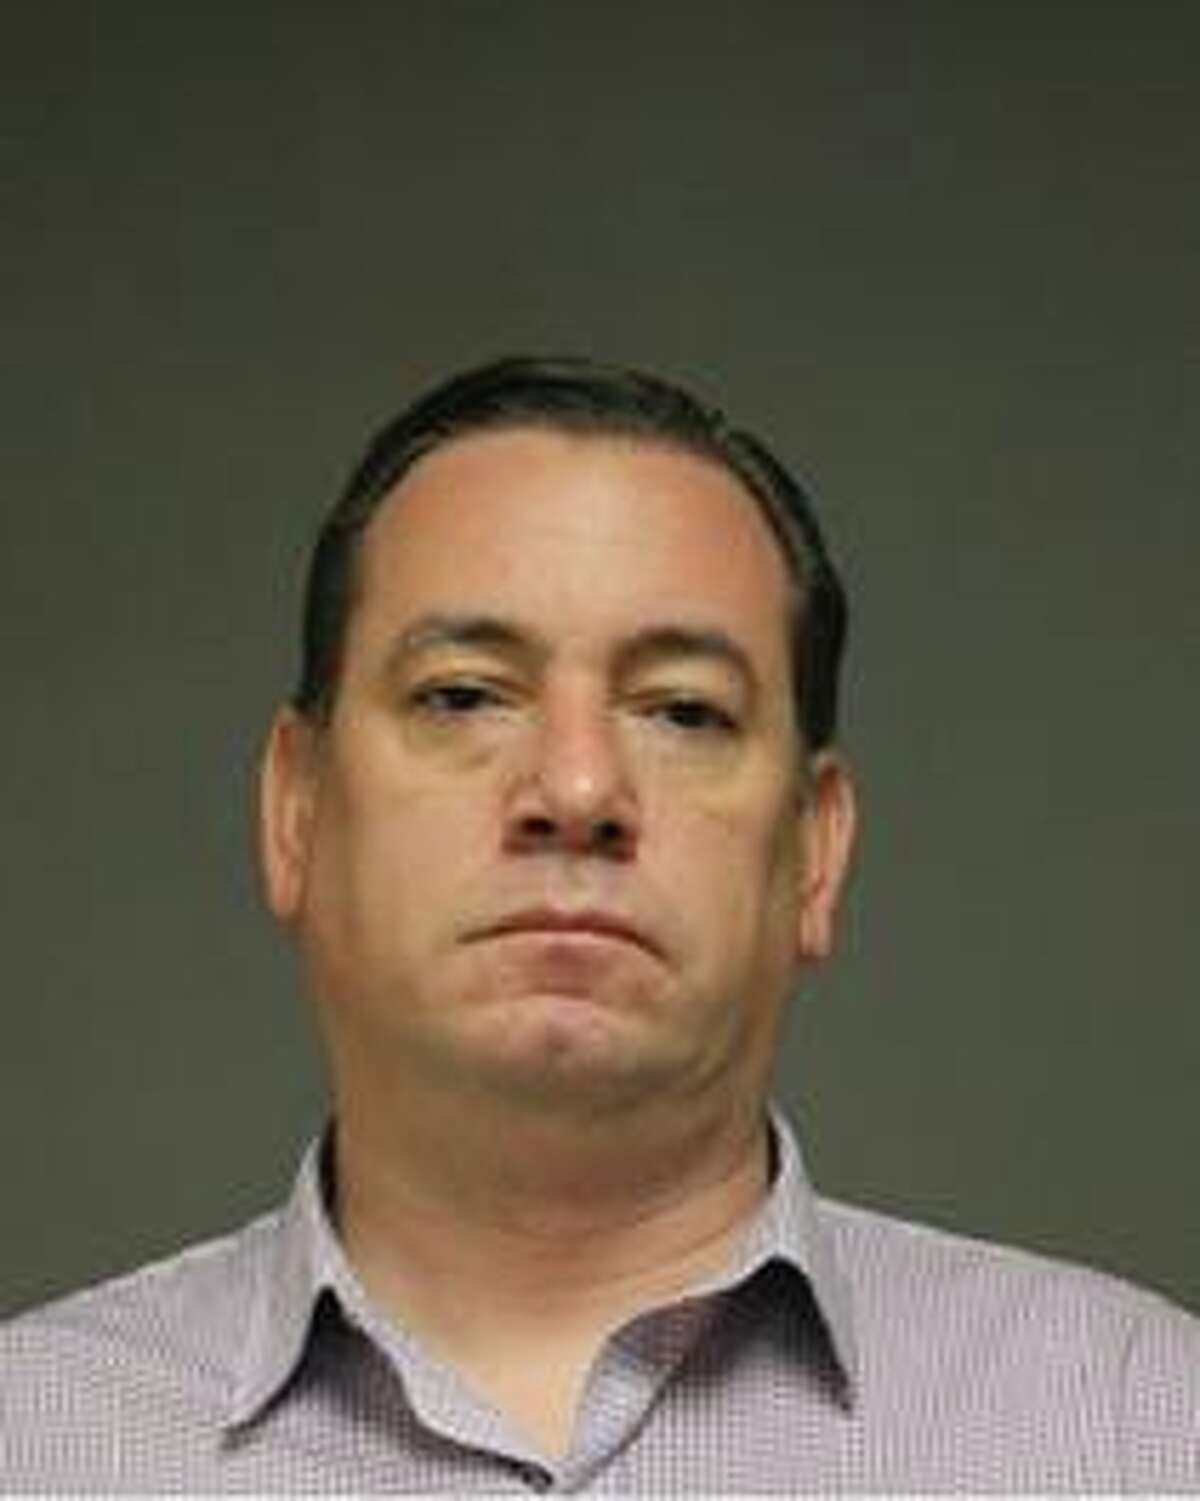 Brian Carey, the Interim Director of Department of Public Works and Conservation Director for the Town of Fairfield, was arrested by Fairfield Police and charged with illegal disposal of PCB's, and conspiracy to commit illegal disposal of PCB's.